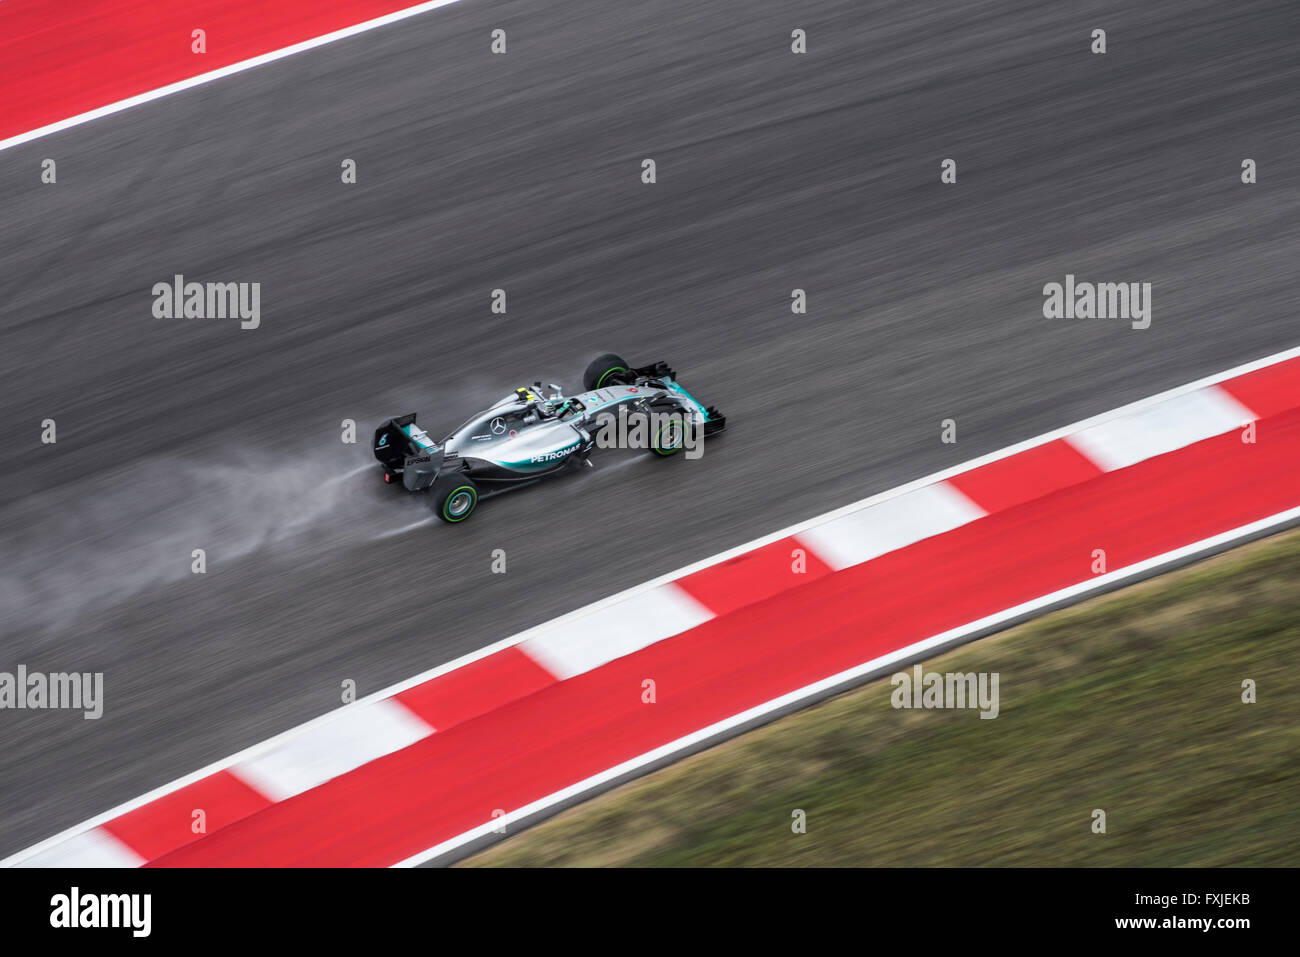 Nico Rosberg seen during a rainy FP1 session prior to the 2015 US Grand Prix in Austin, Texas. Stock Photo